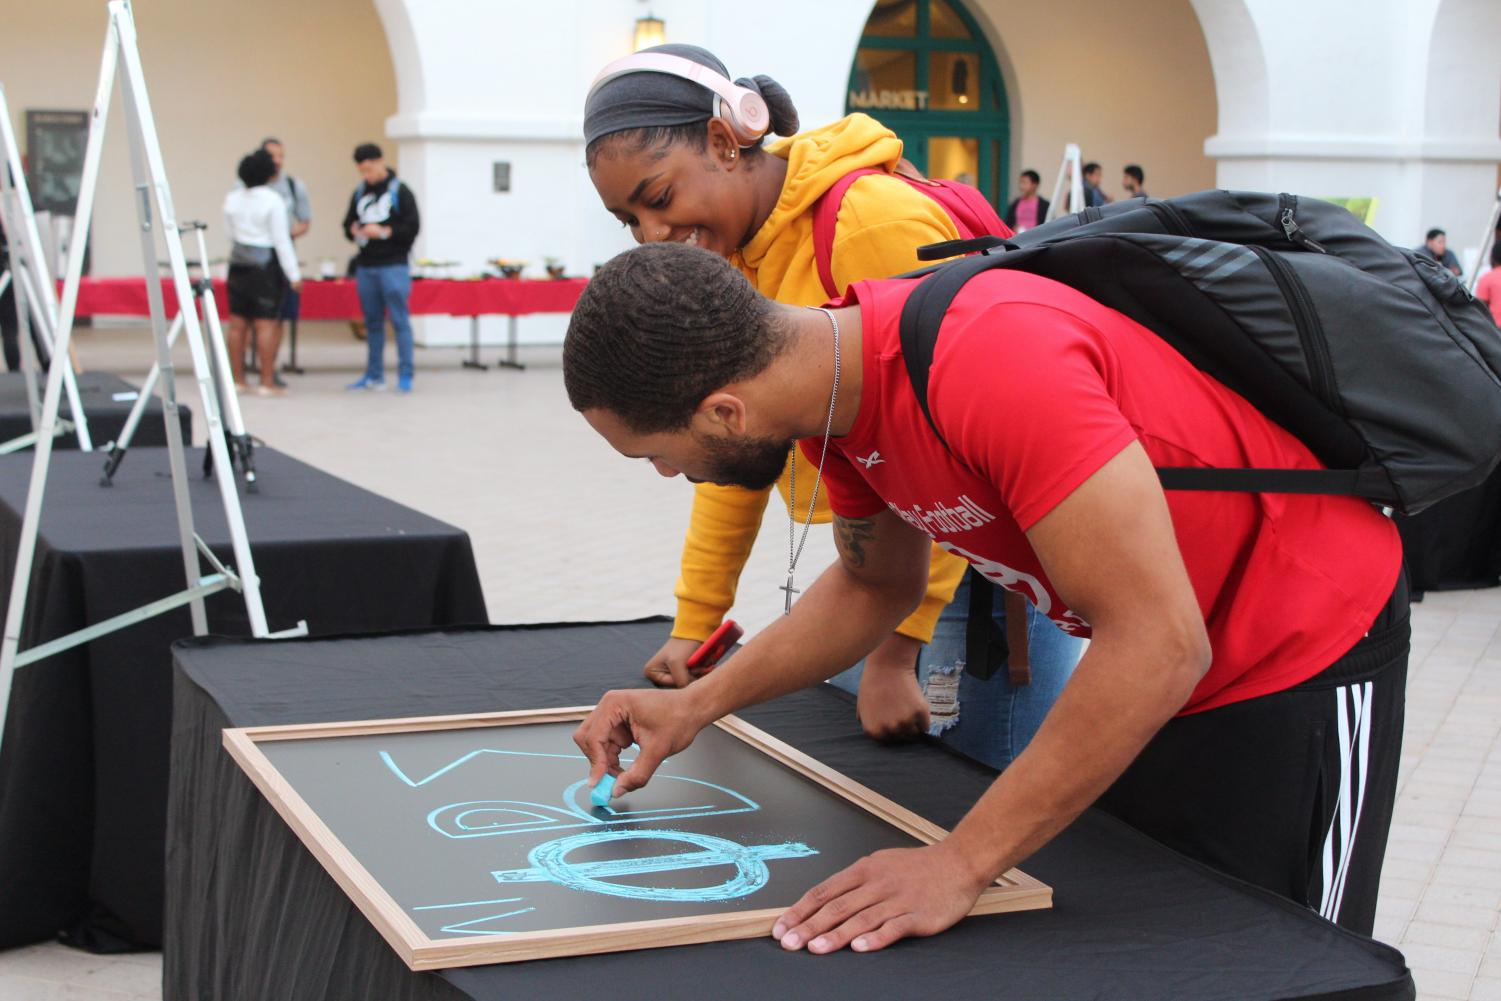 Students at the Aztec Art Contest admire the work.